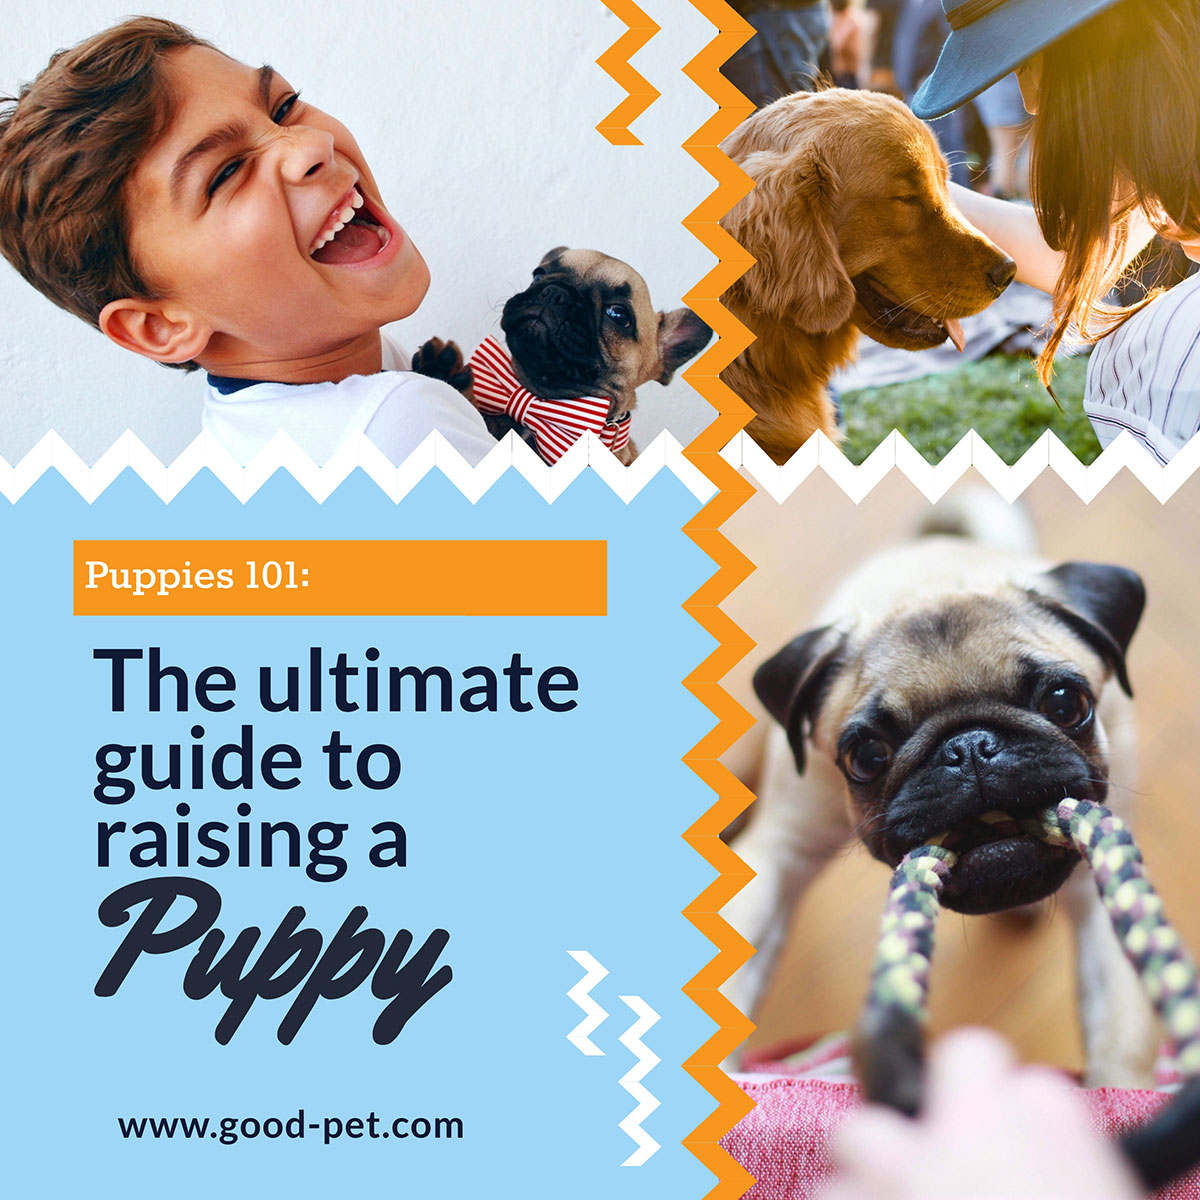 An example of social media graphic template in Visme that uses a collage of pet images.